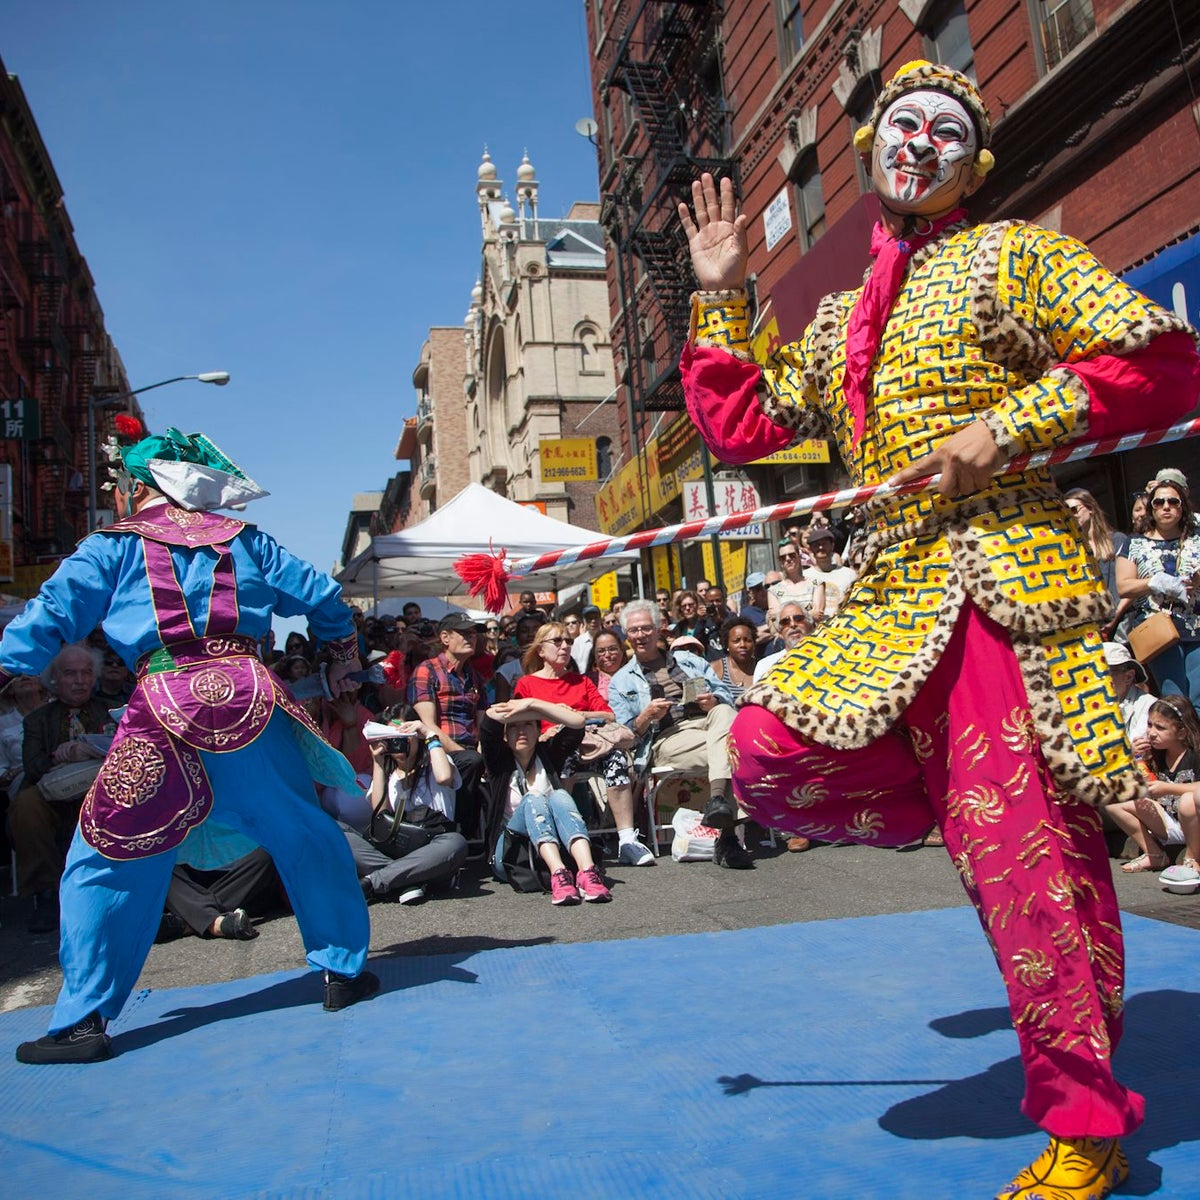 The Egg Rolls and Egg Creams festival at the Museum at Eldridge Street, New York.